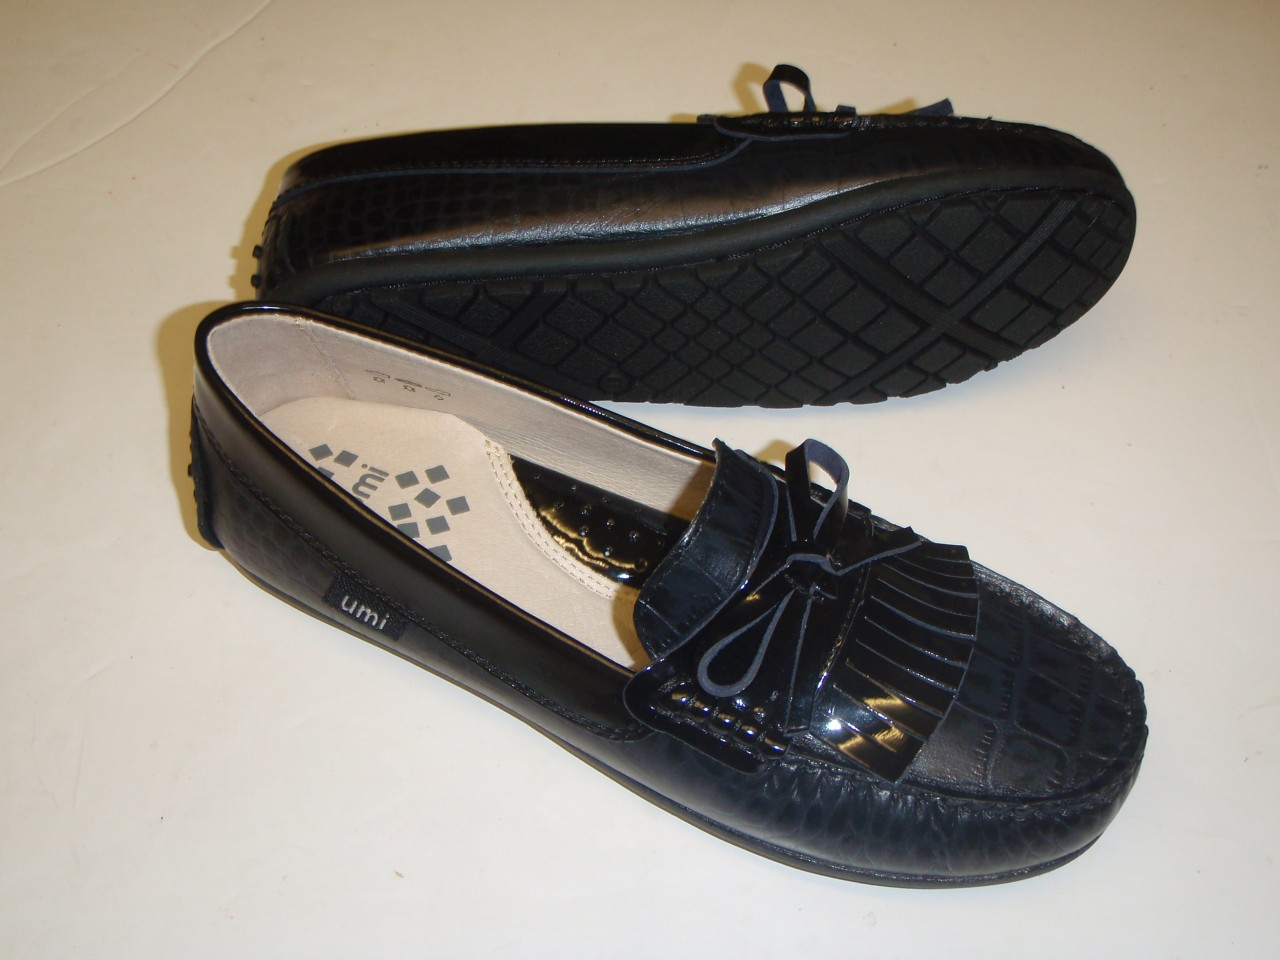 Where To Buy Umi Shoes